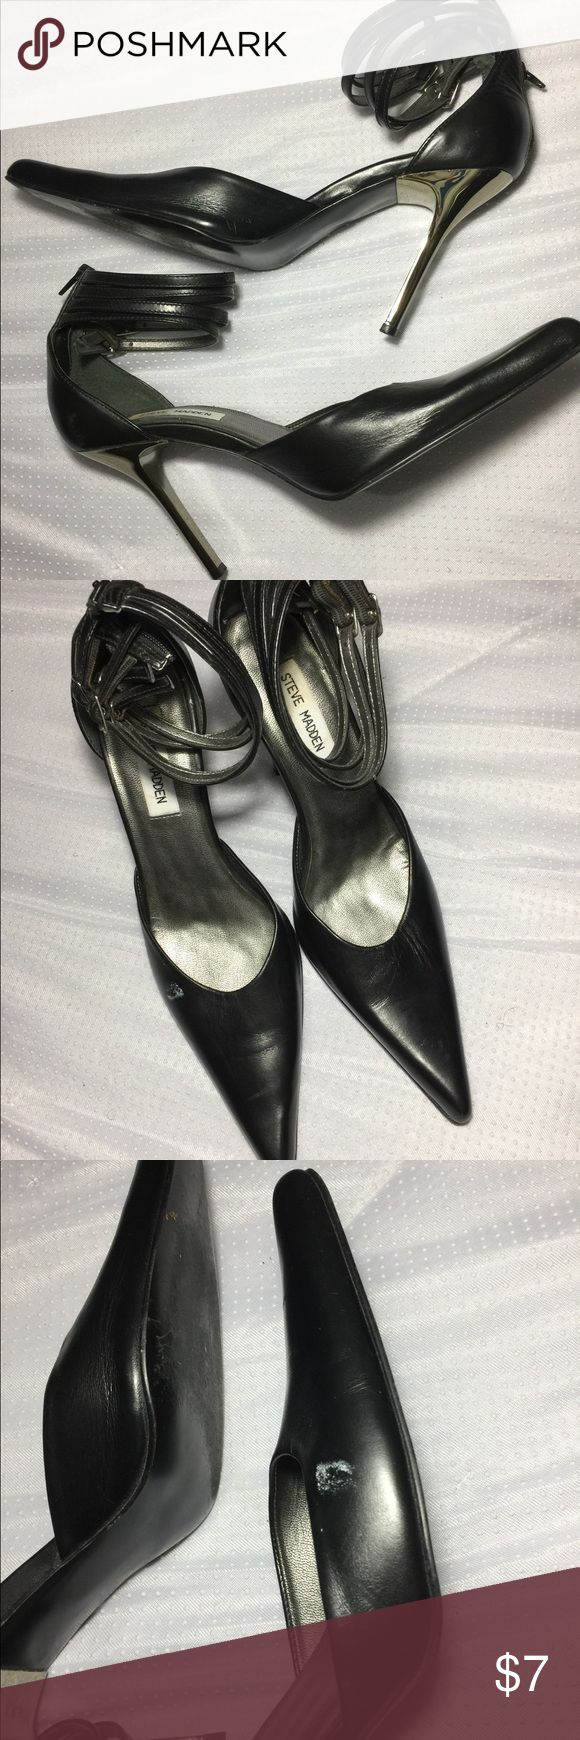 Steve Madden SilverStiletto PointedToe Black Heels Size:9. Has 4 Straps. Pointed toe. Flaw: small white mark on one of the shoes *see photos*. Good condition, otherwise. Steve Madden Shoes Heels